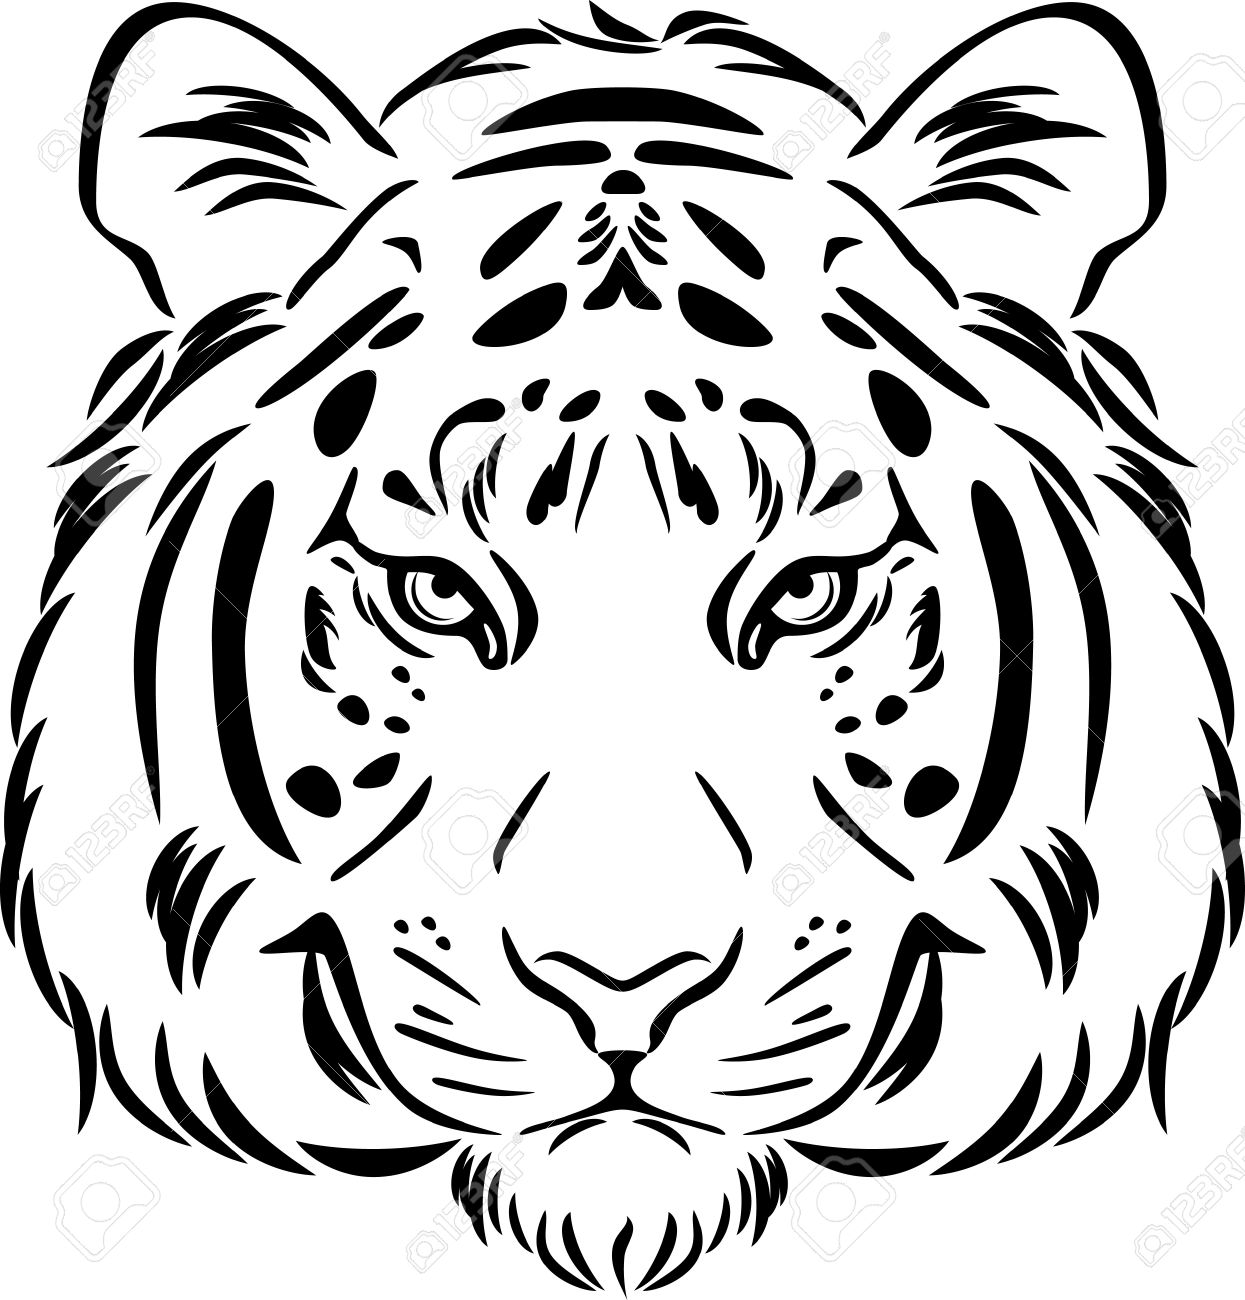 Tiger Outline Drawing At Getdrawings